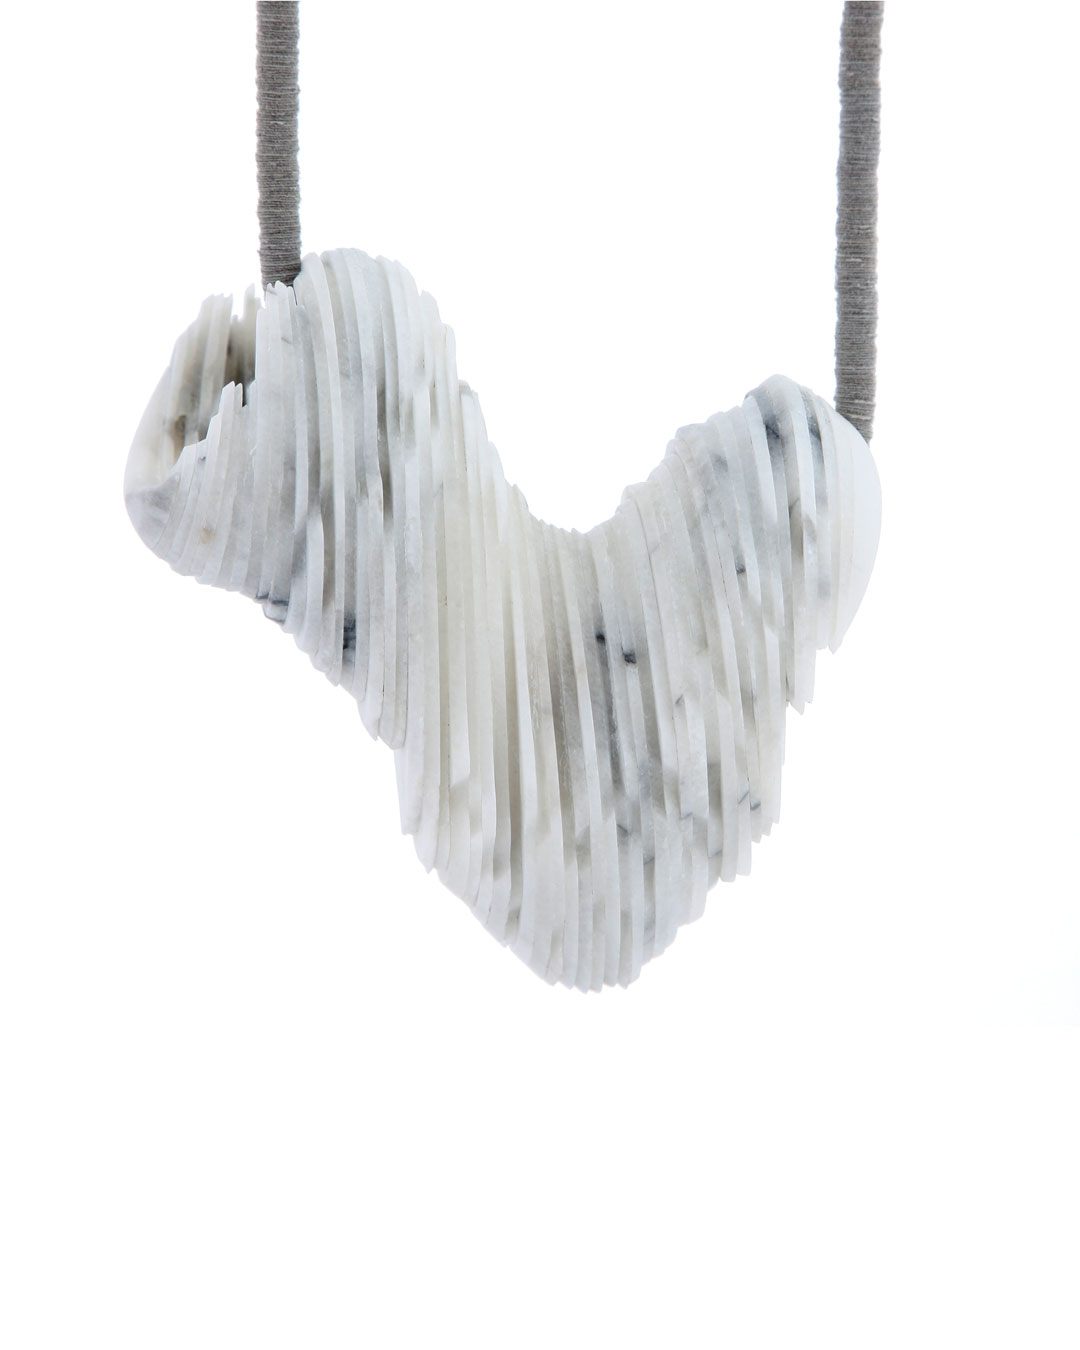 Tarja Tuupanen, untitled, 2015, necklace; ready-made marble tableware, velour sticker, steel wire, brass, 450 x 120 x 50 mm, €1700